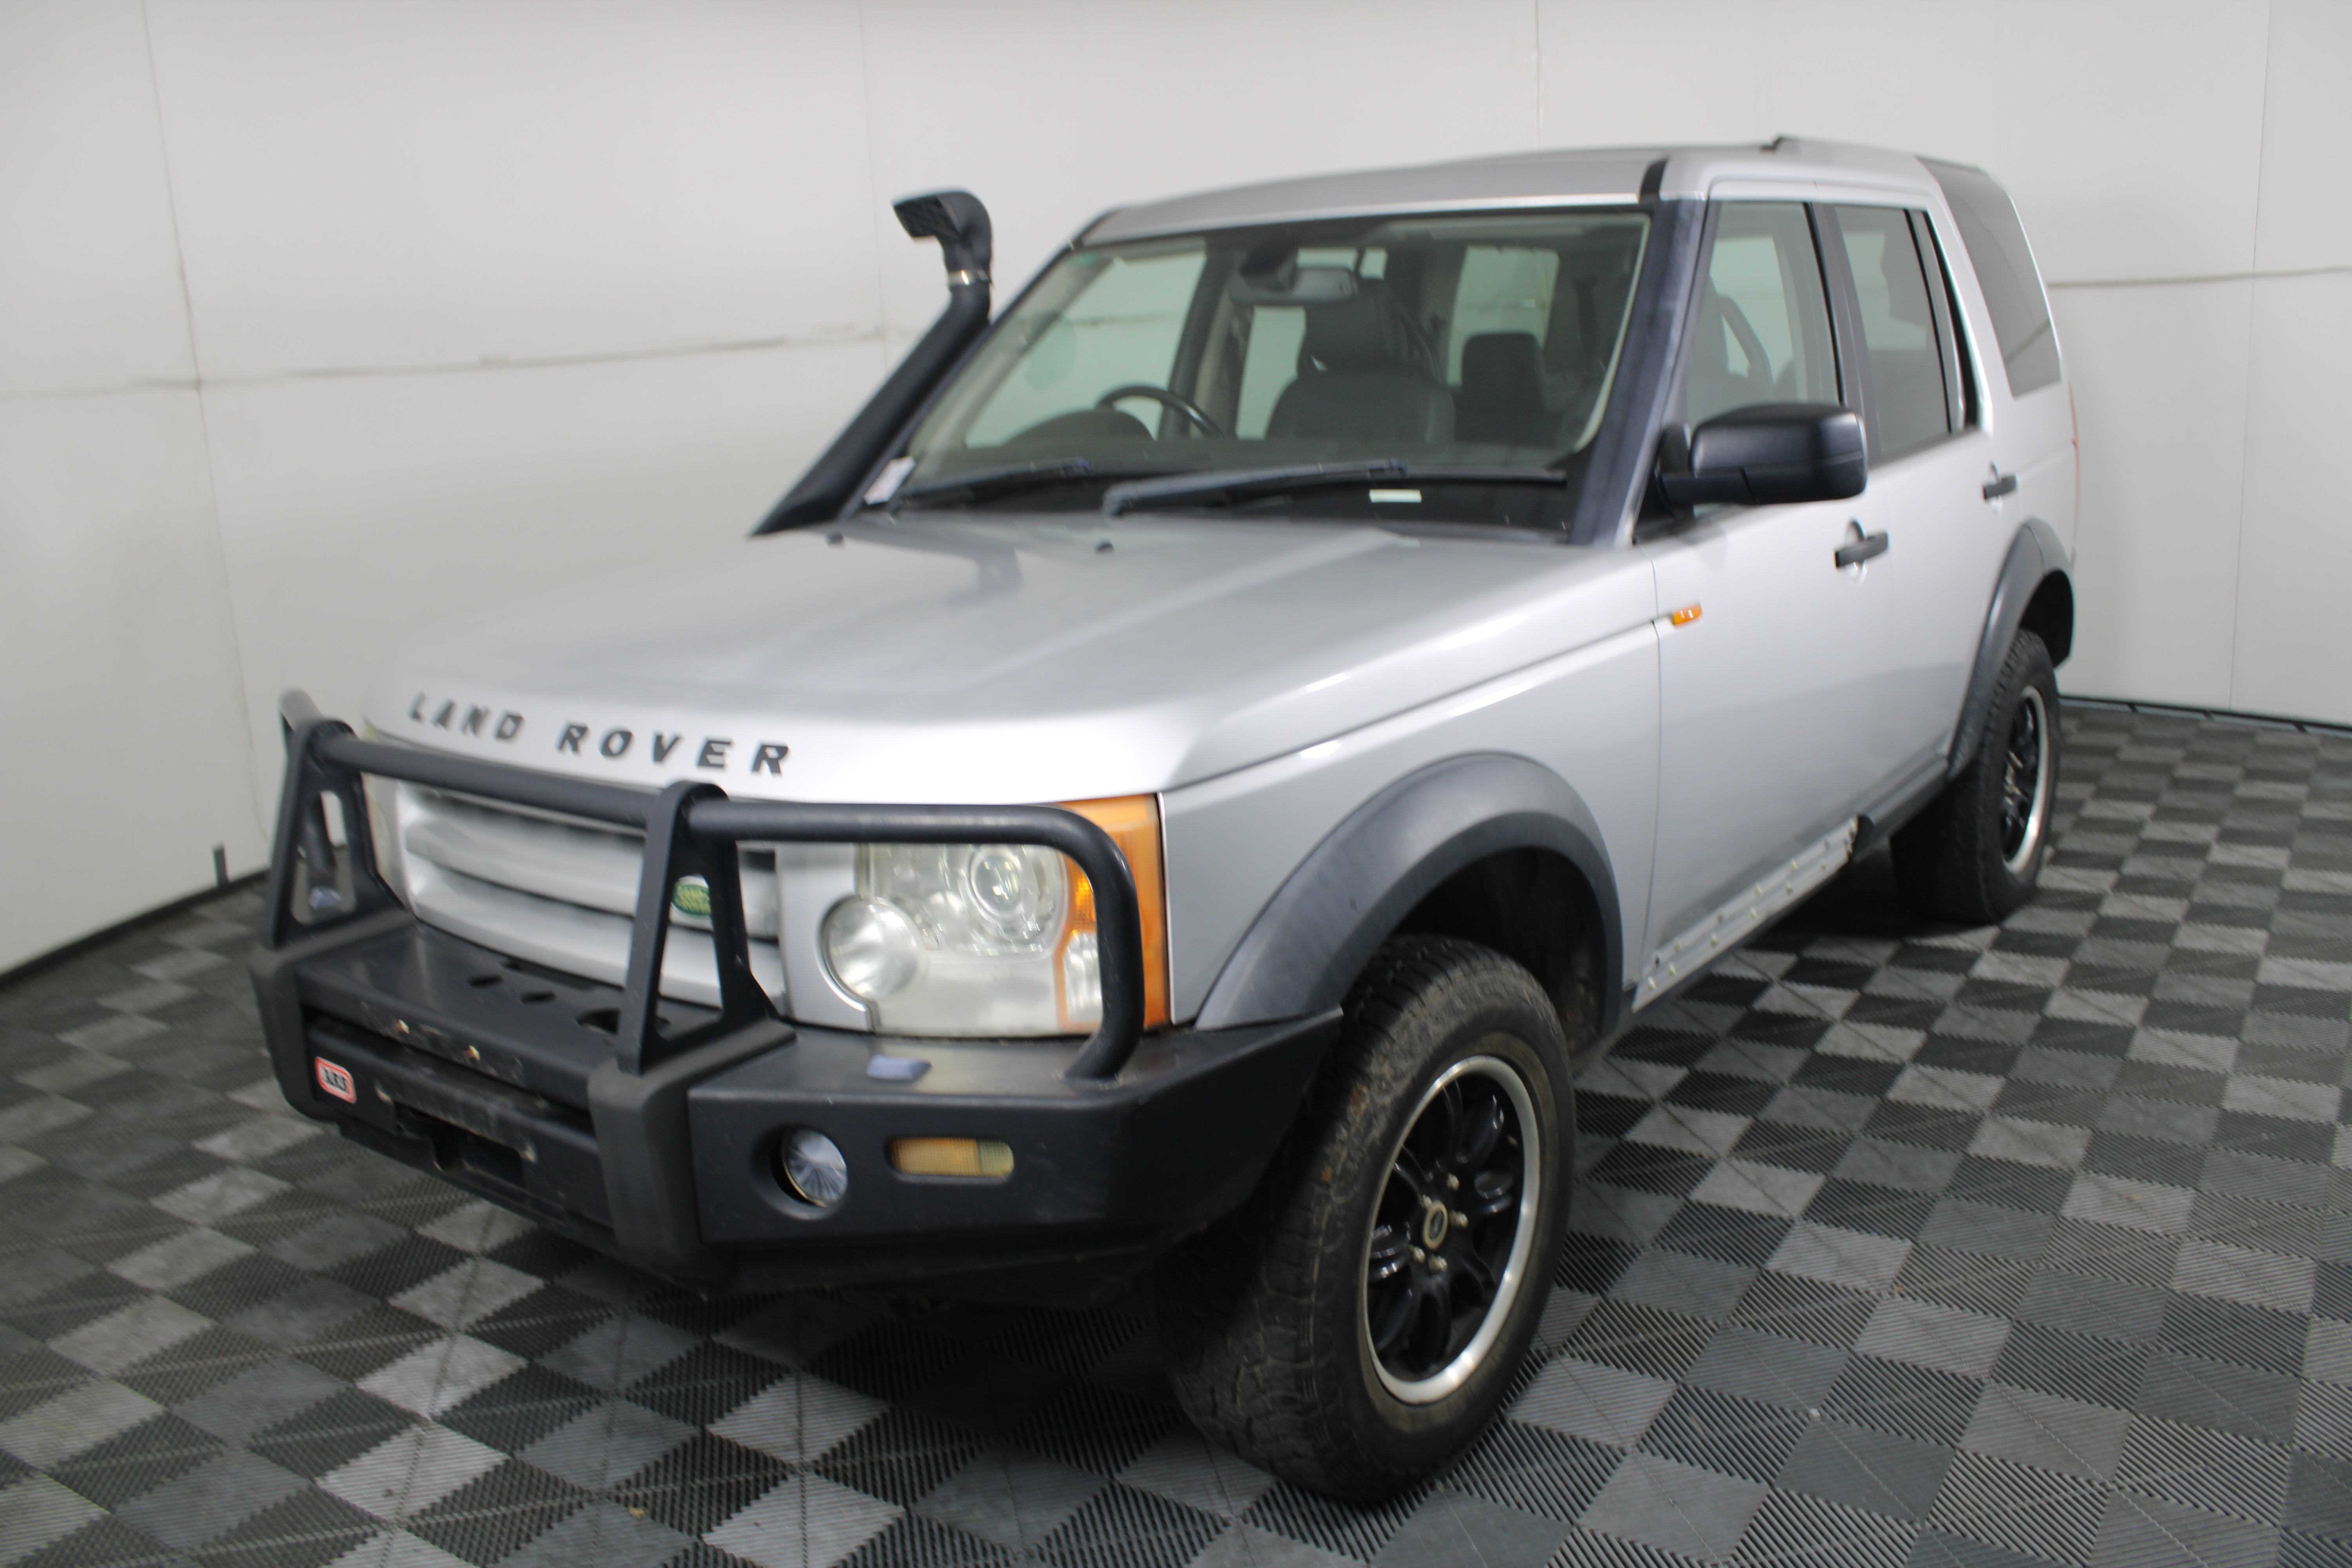 2005 Land Rover Discovery 3 SE Series III T/Diesel Auto 7 Seats (WOVR)